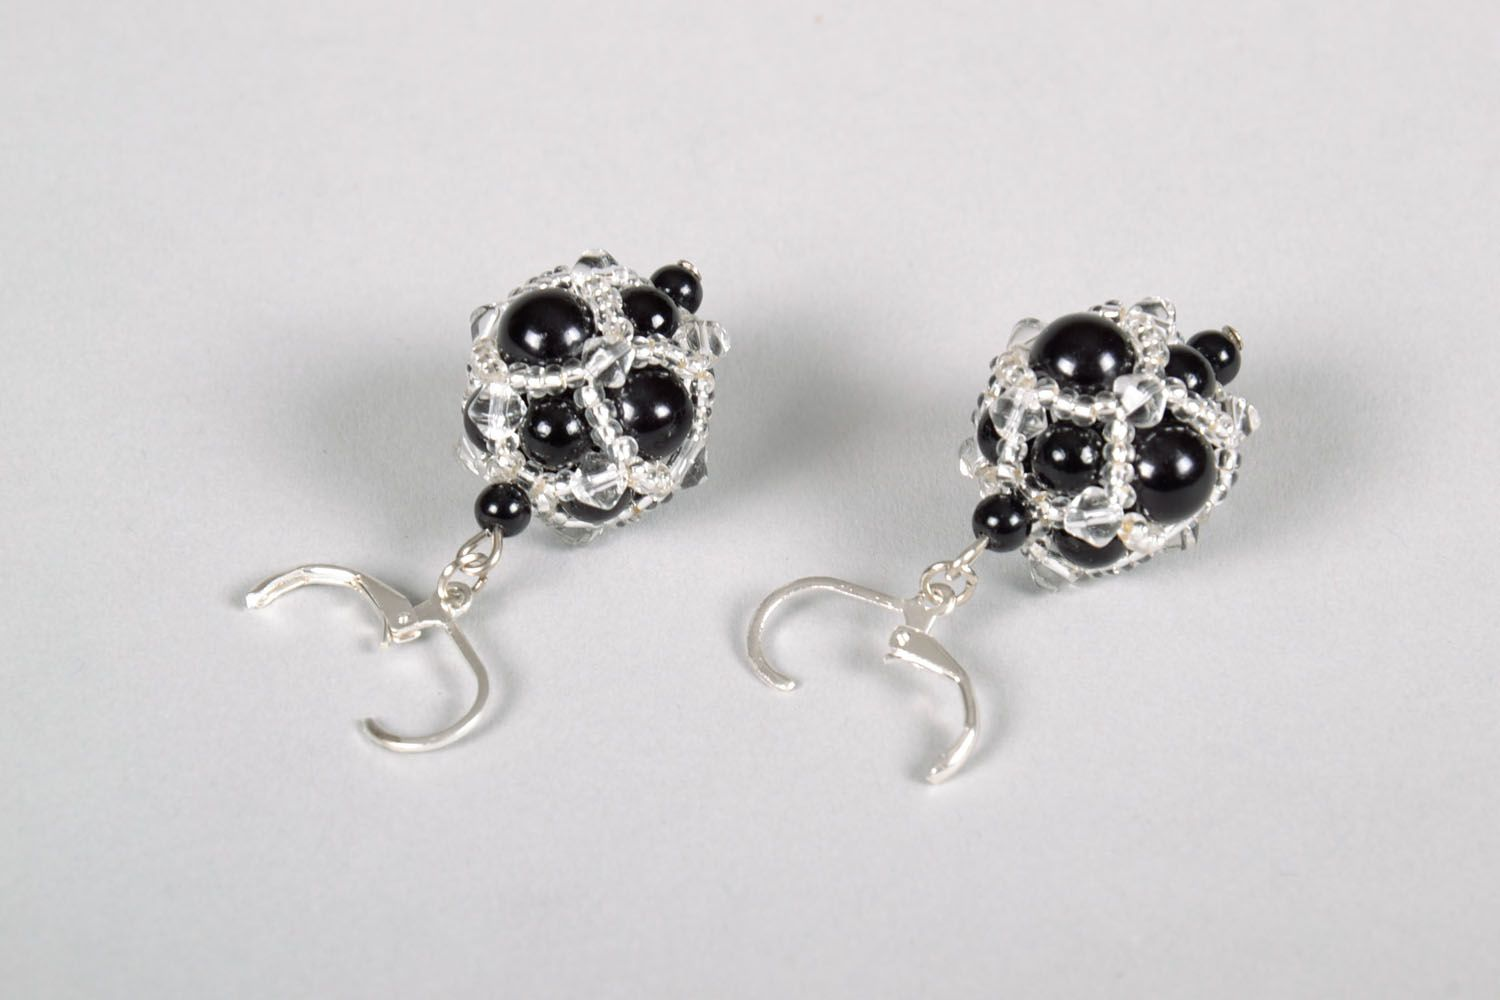 Evening earrings with black beads photo 4